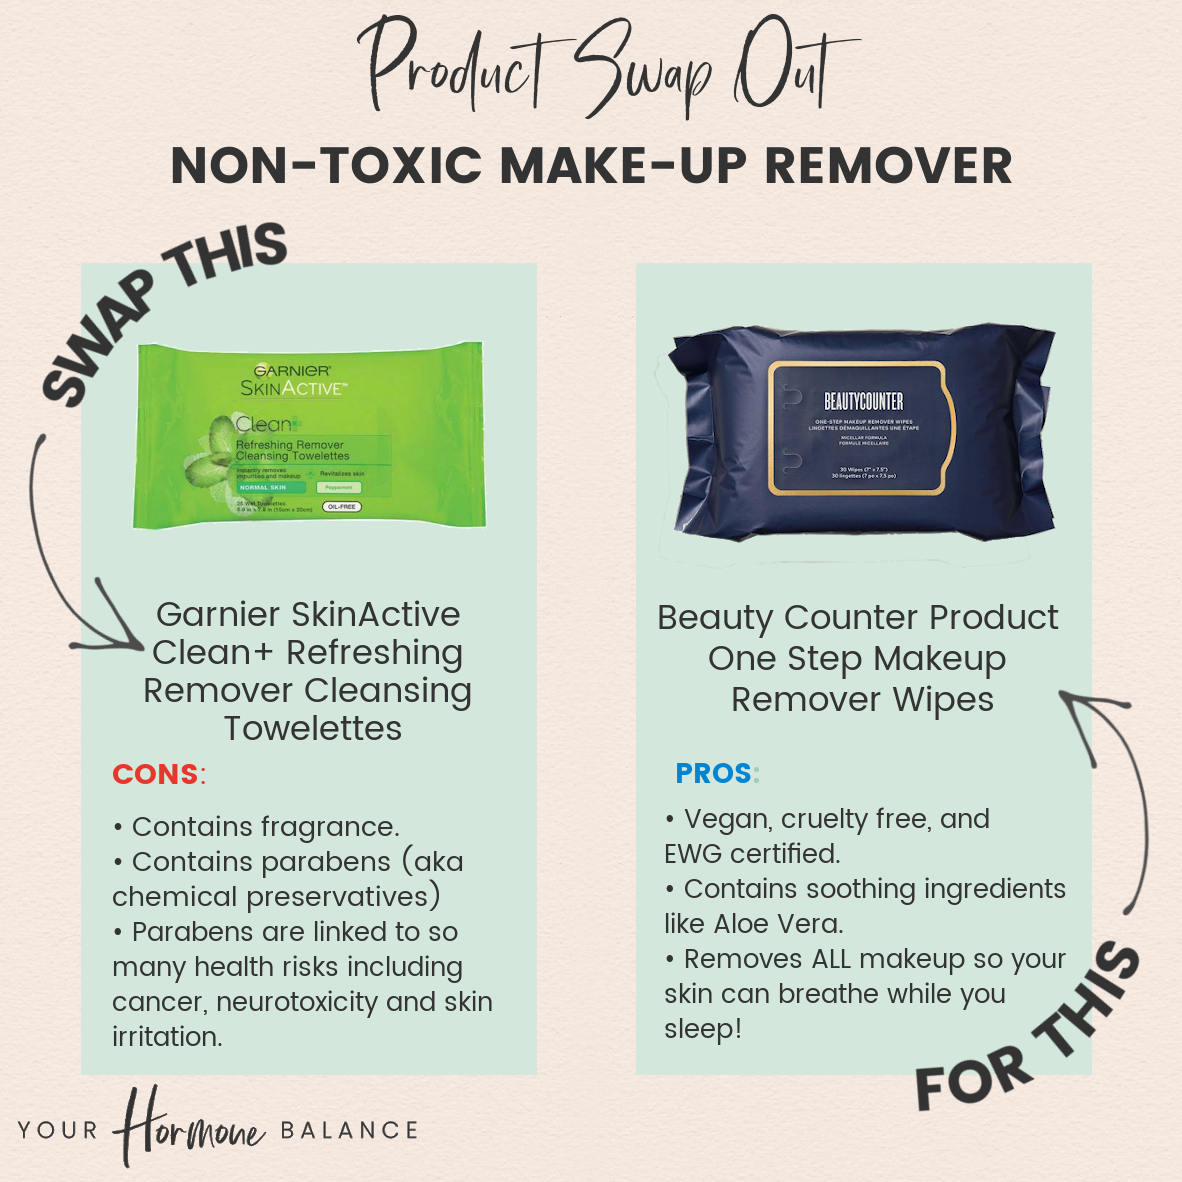 Step Makeup Remover Wipes